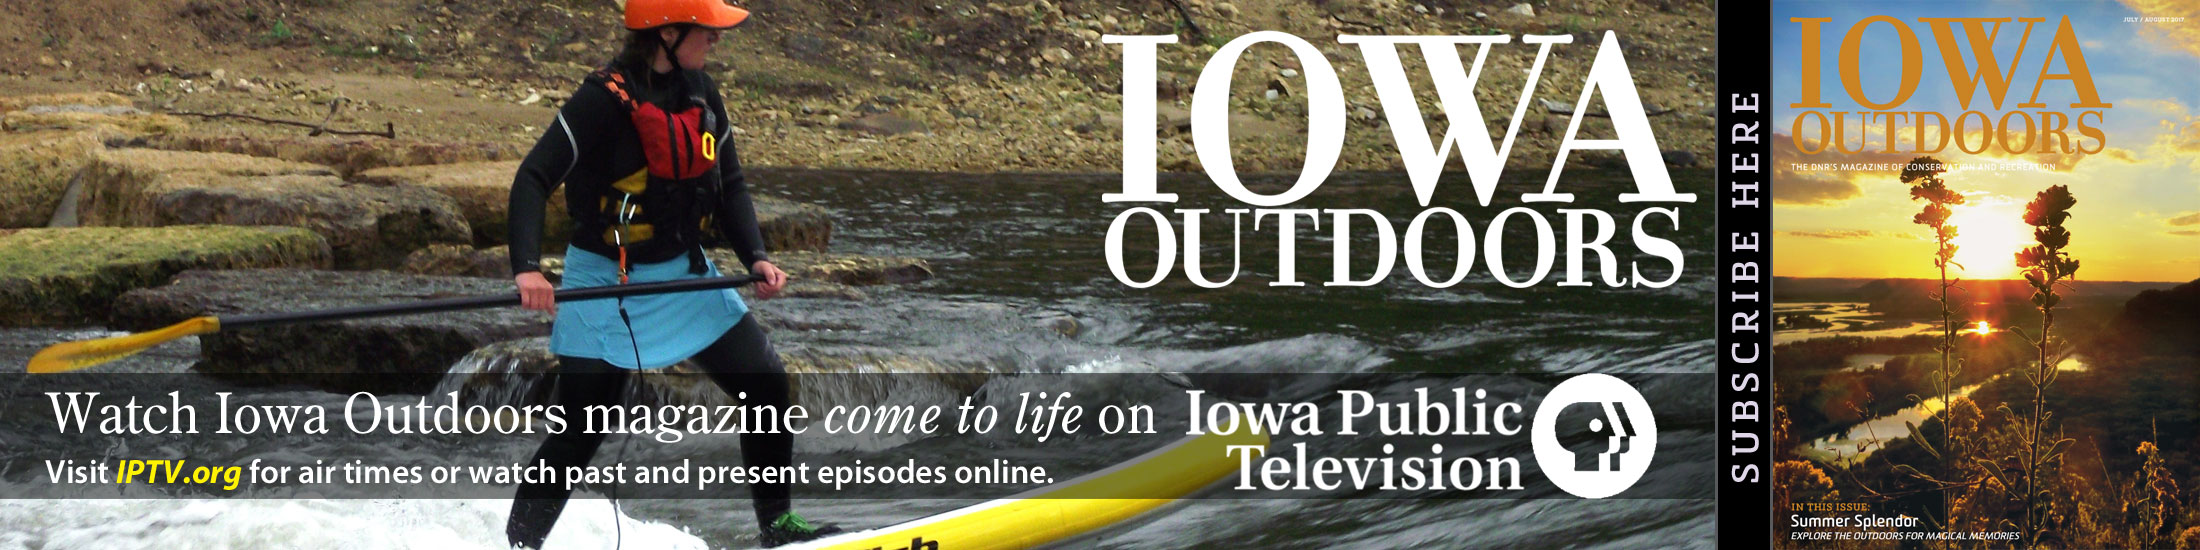 Iowa Outdoors Magazine, IPTV TV Show